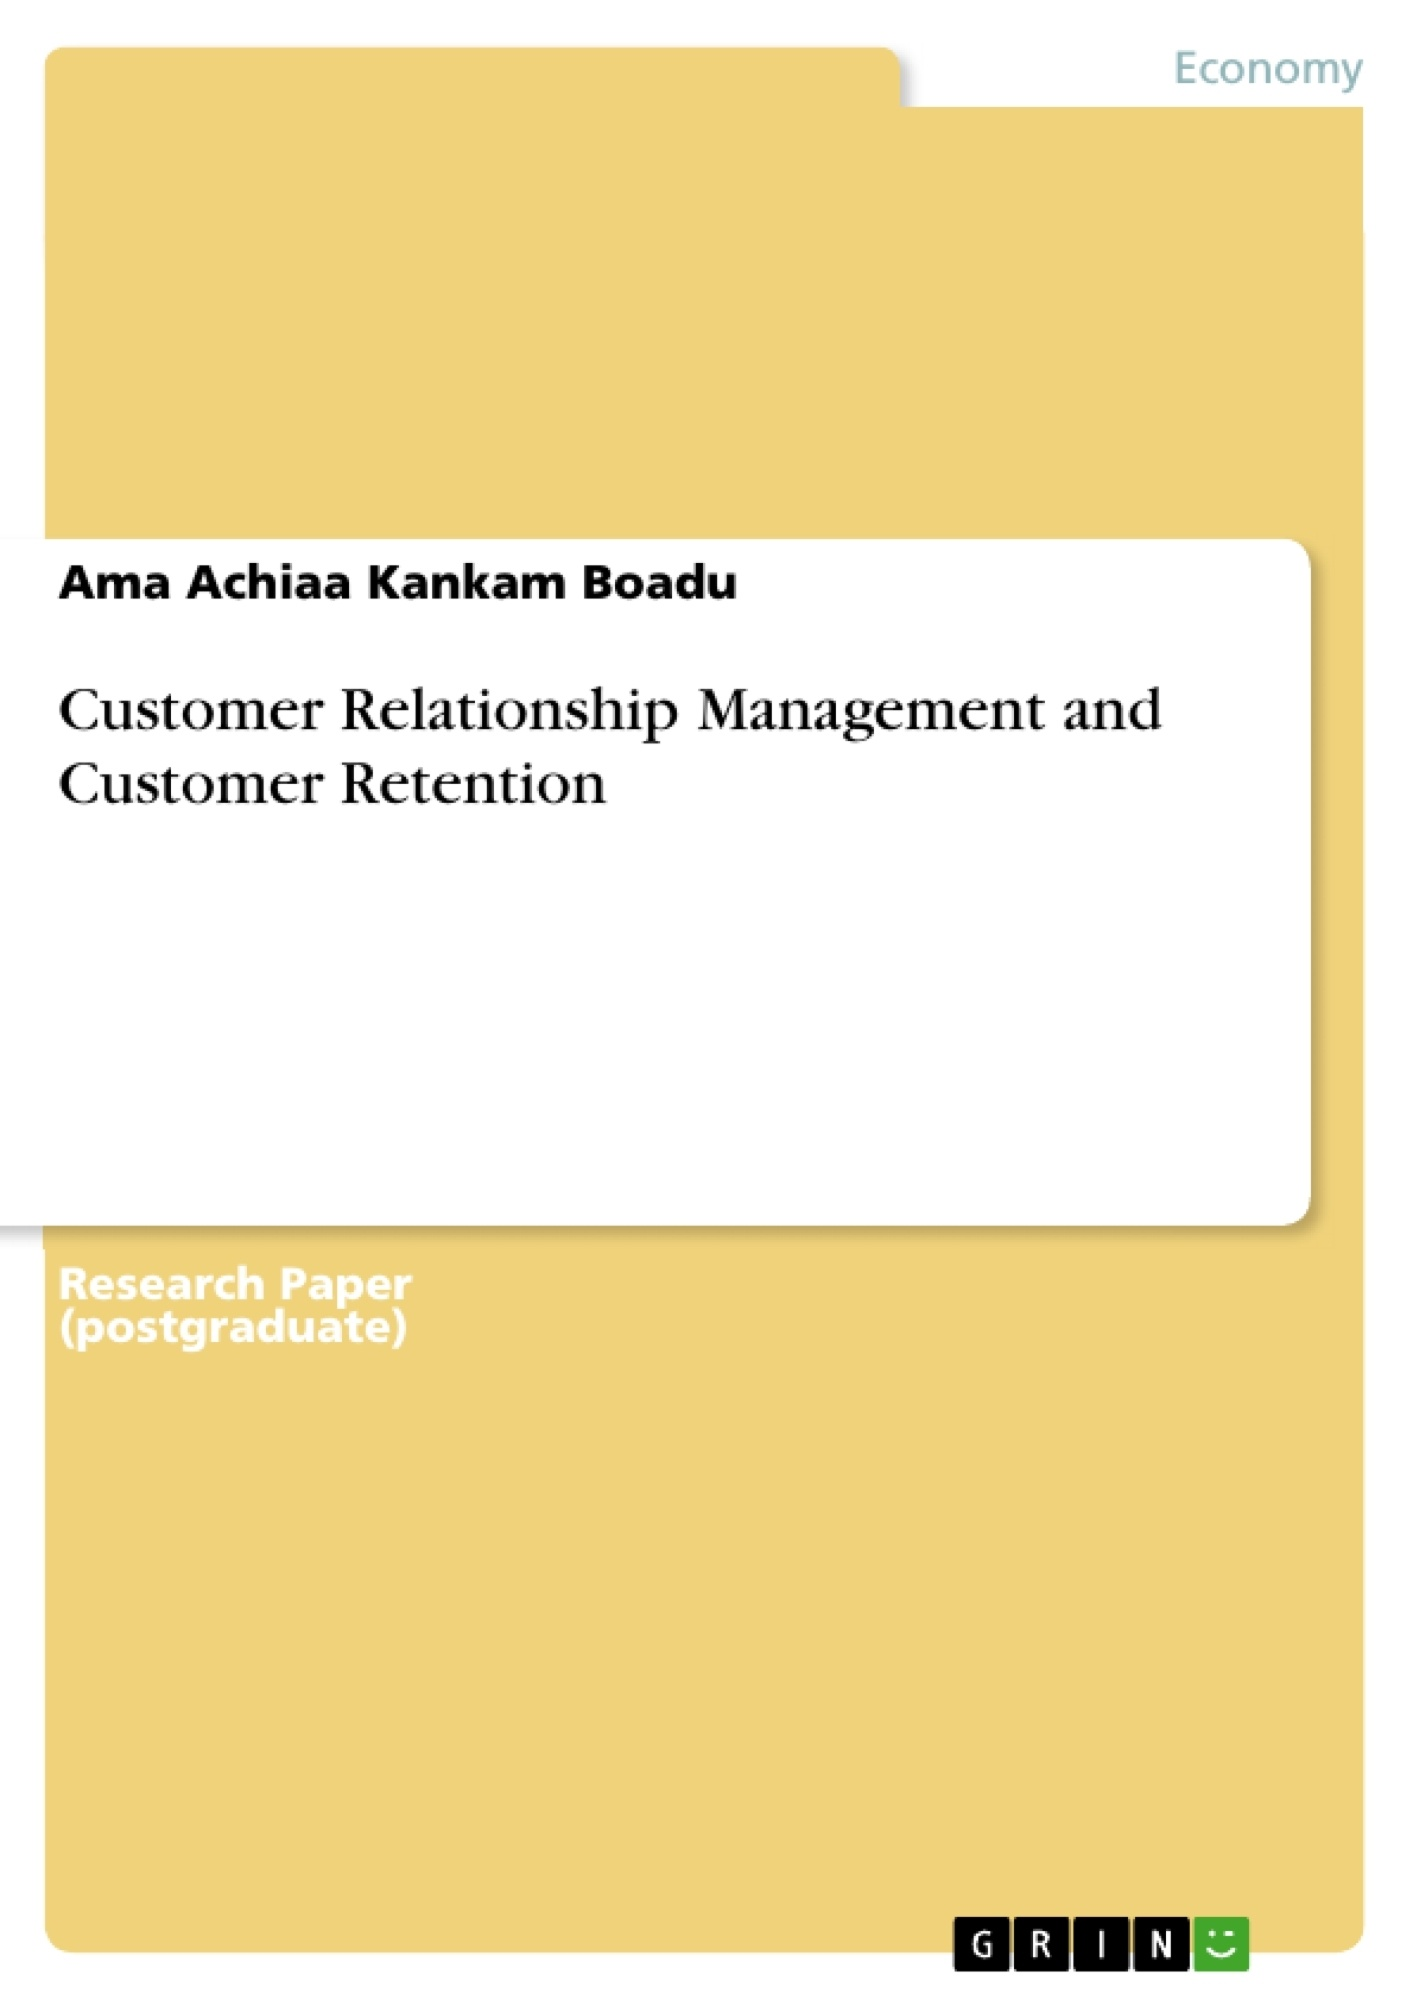 Title: Customer Relationship Management and Customer Retention